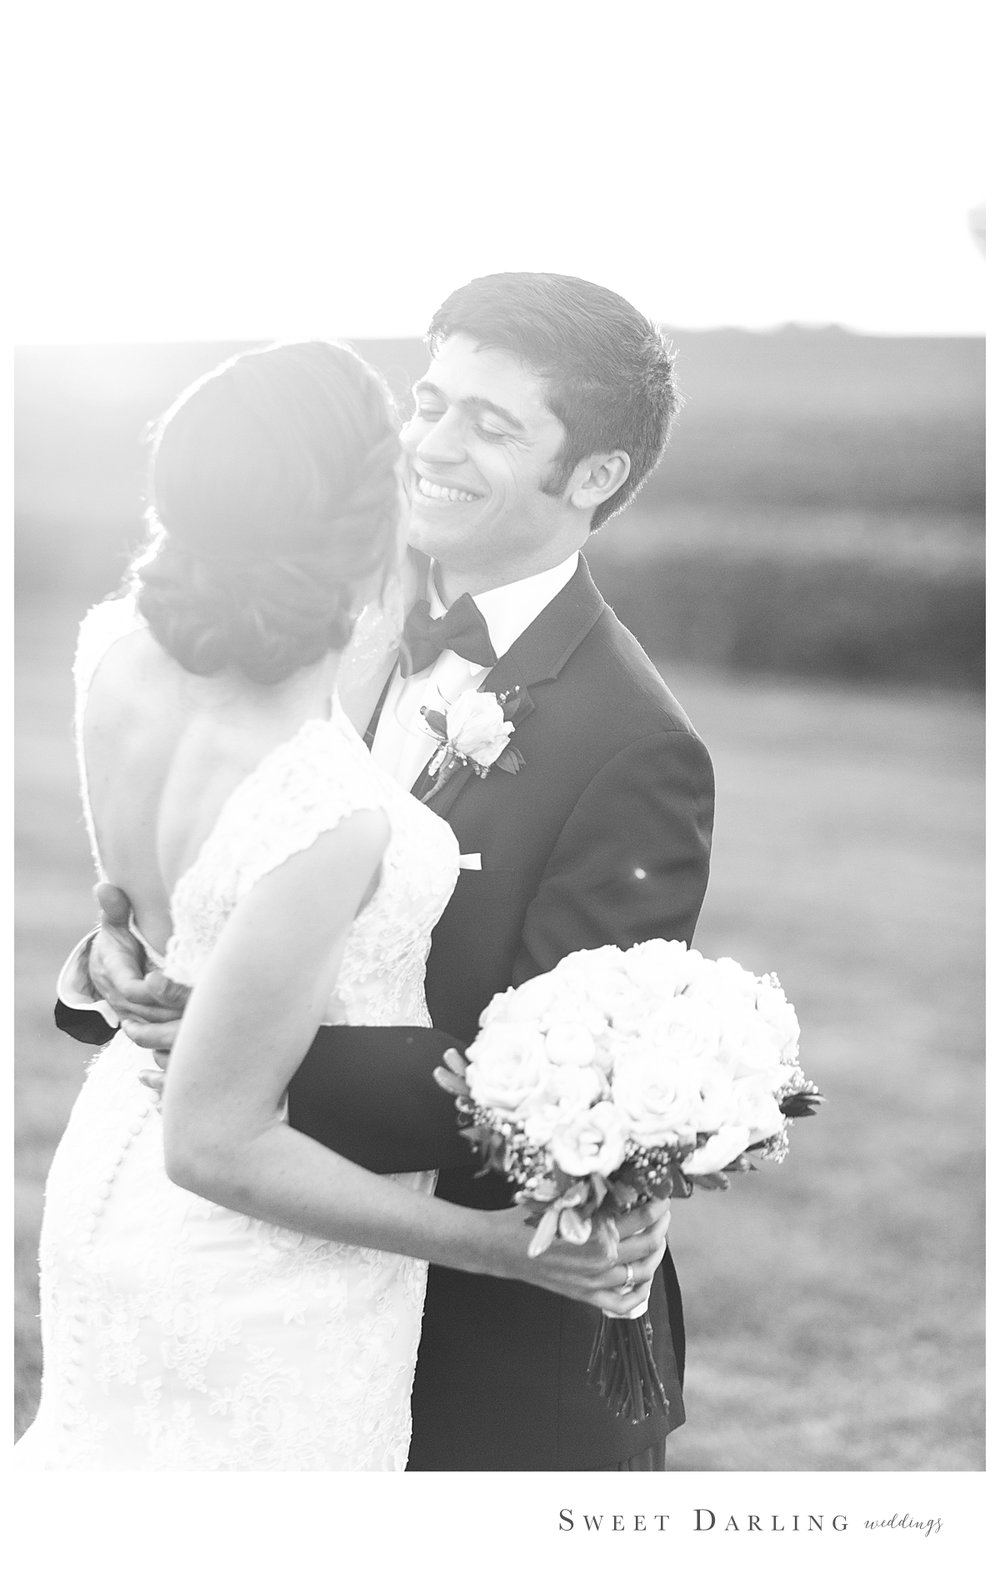 Our hearts melted over this spontaneous moment of laughter between Nick & Elizabeth!